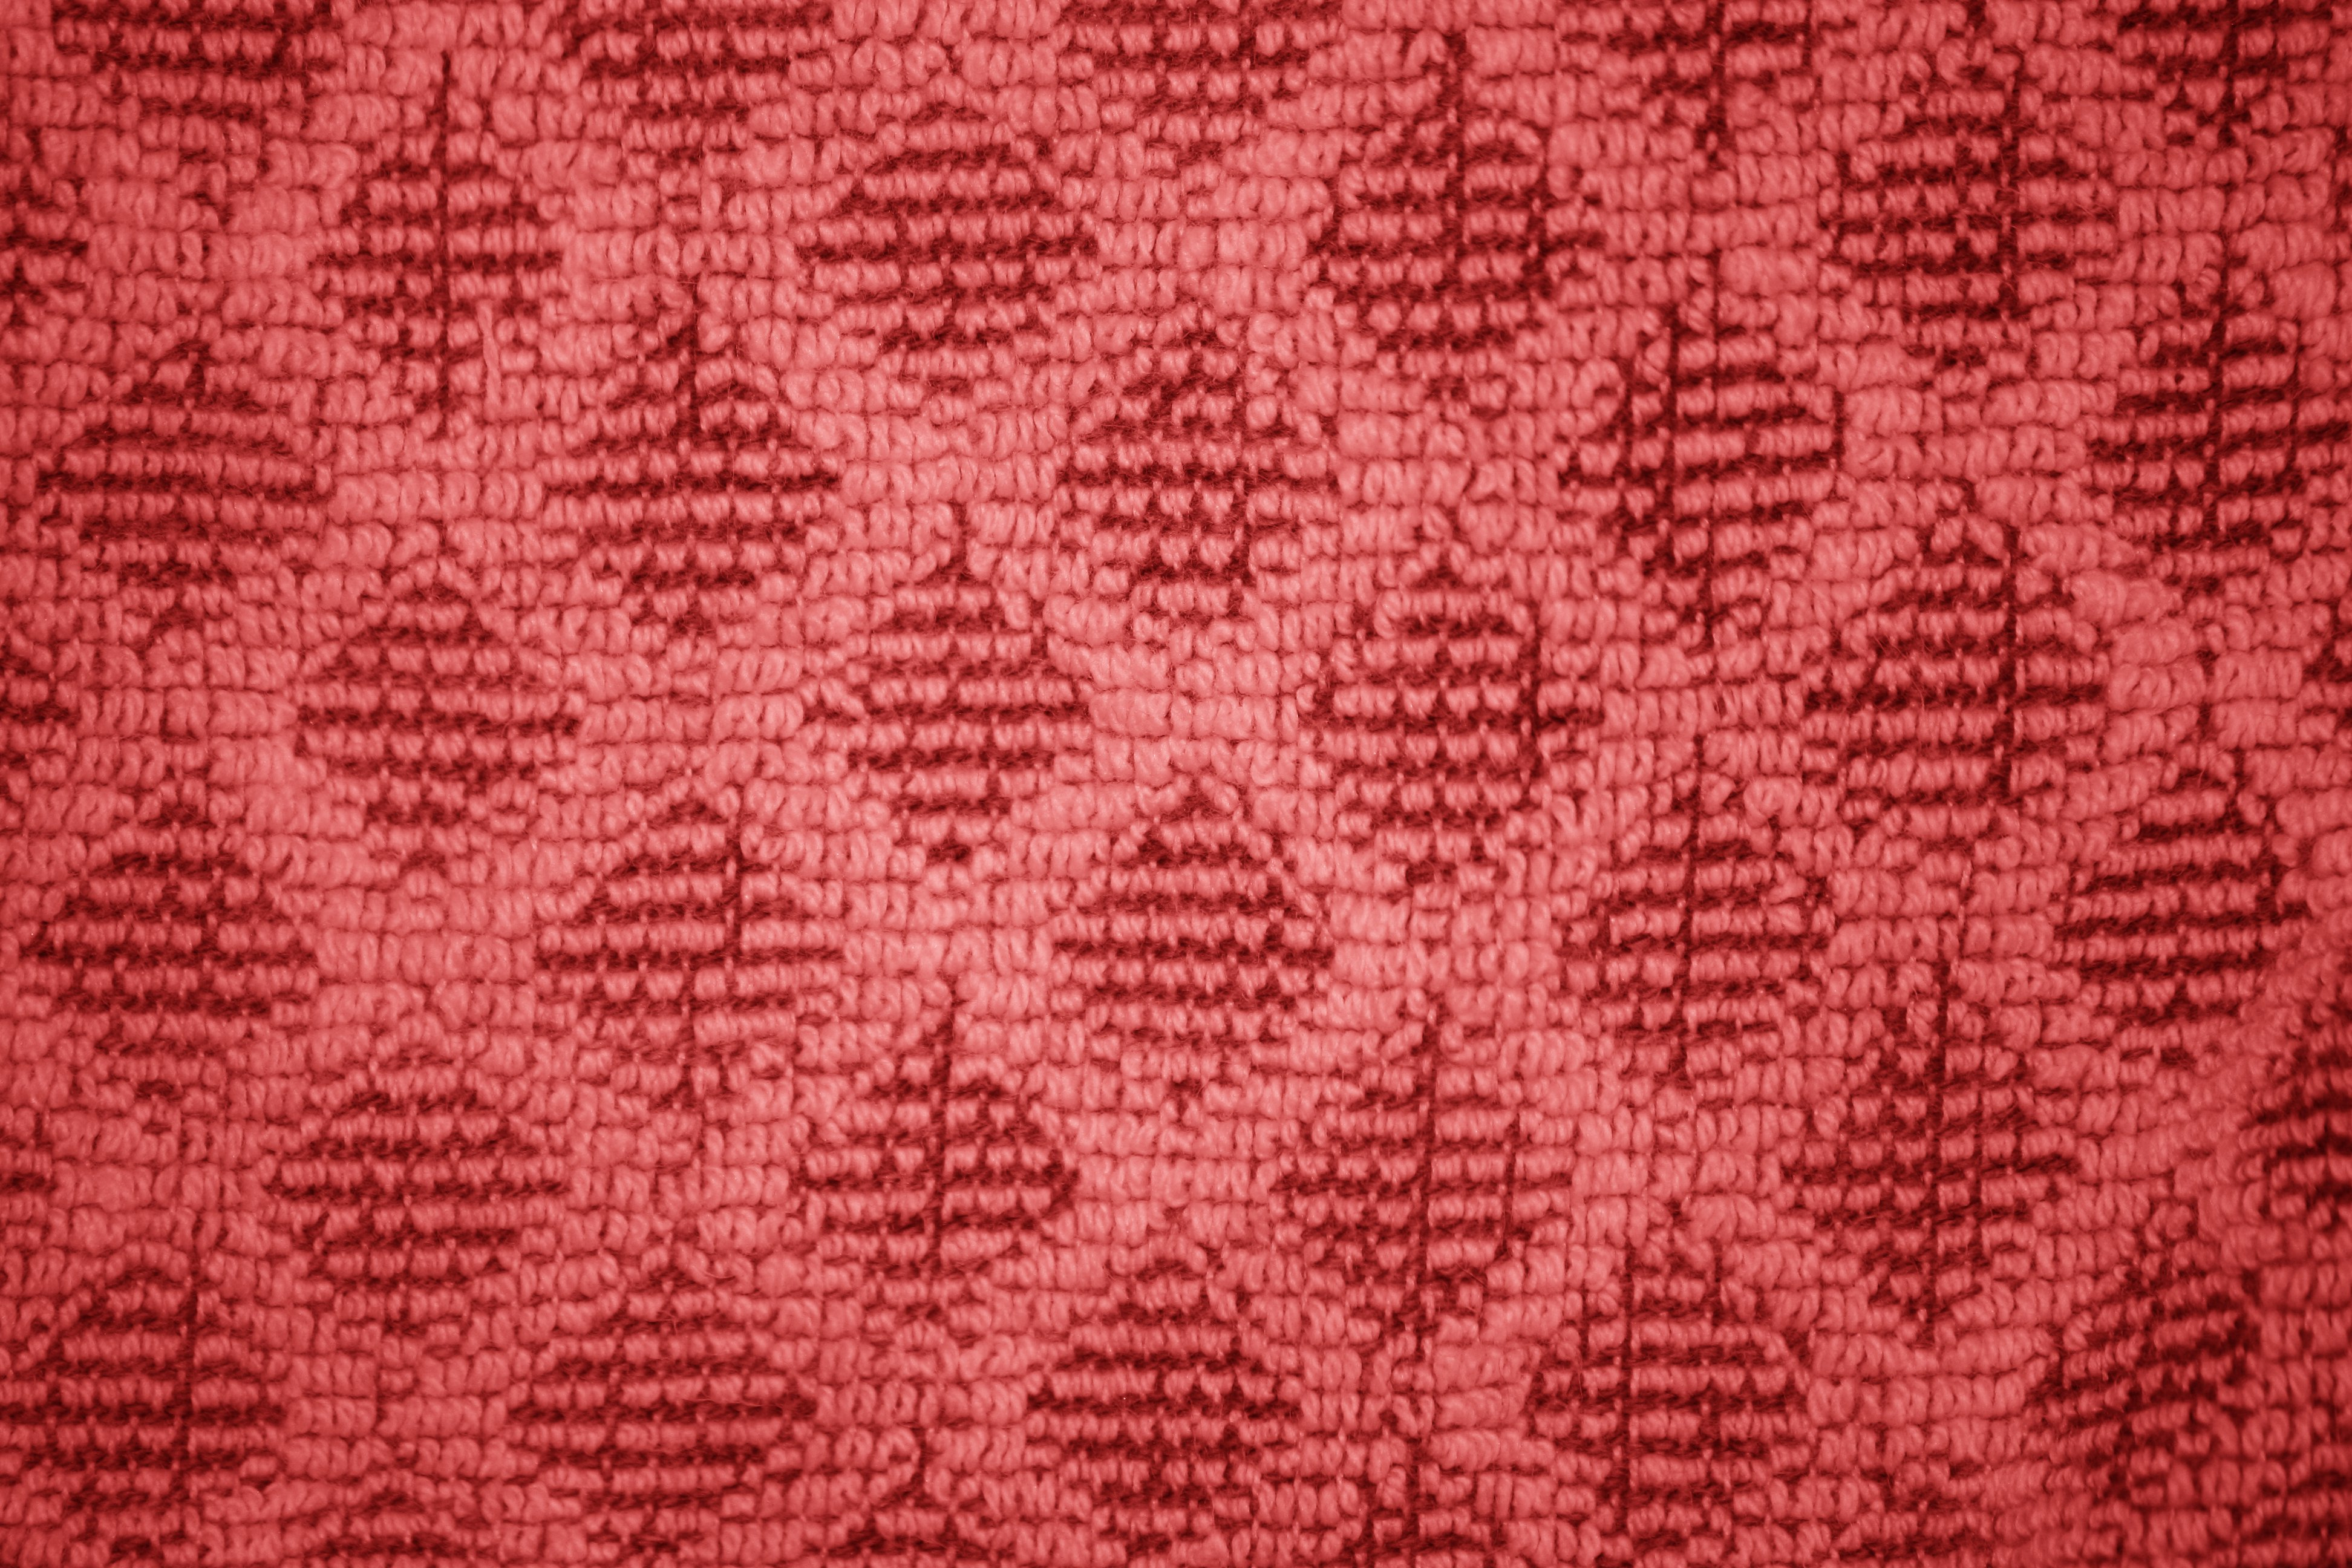 Red Dish Towel with Diamond Pattern Close Up Texture Picture | Free ...